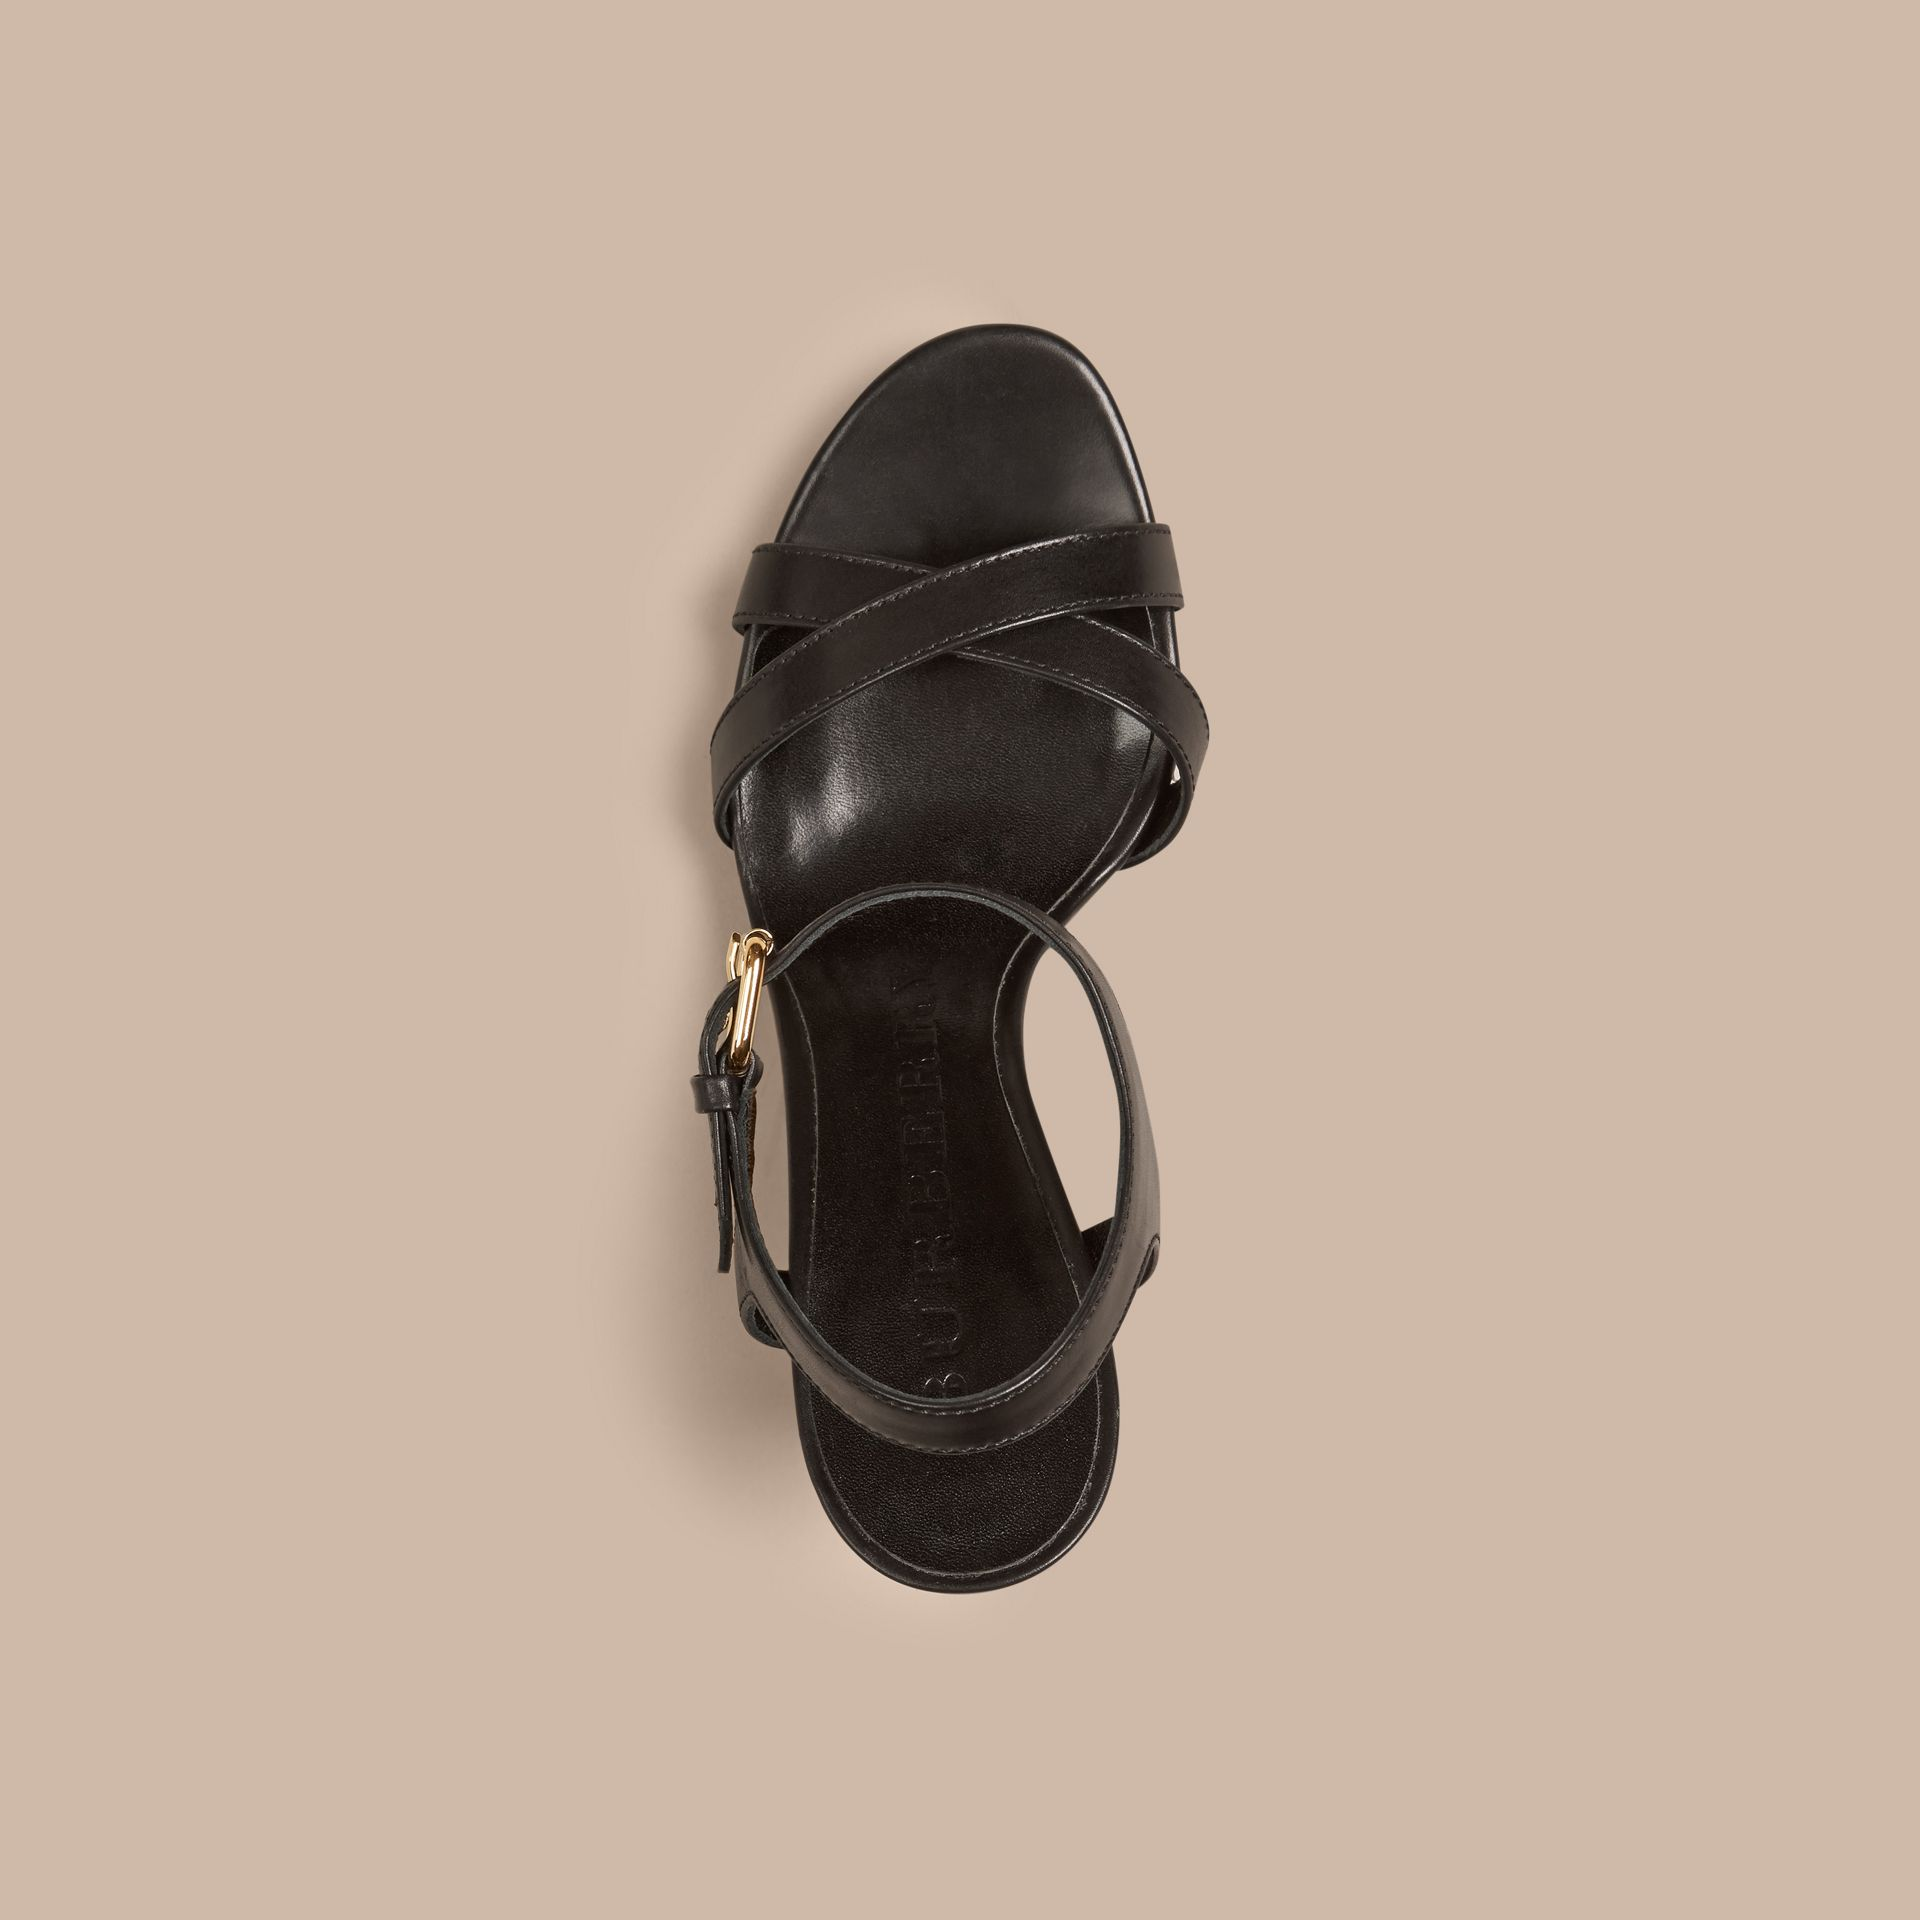 House Check and Leather Wedge Sandals in Black - Women | Burberry - gallery image 4